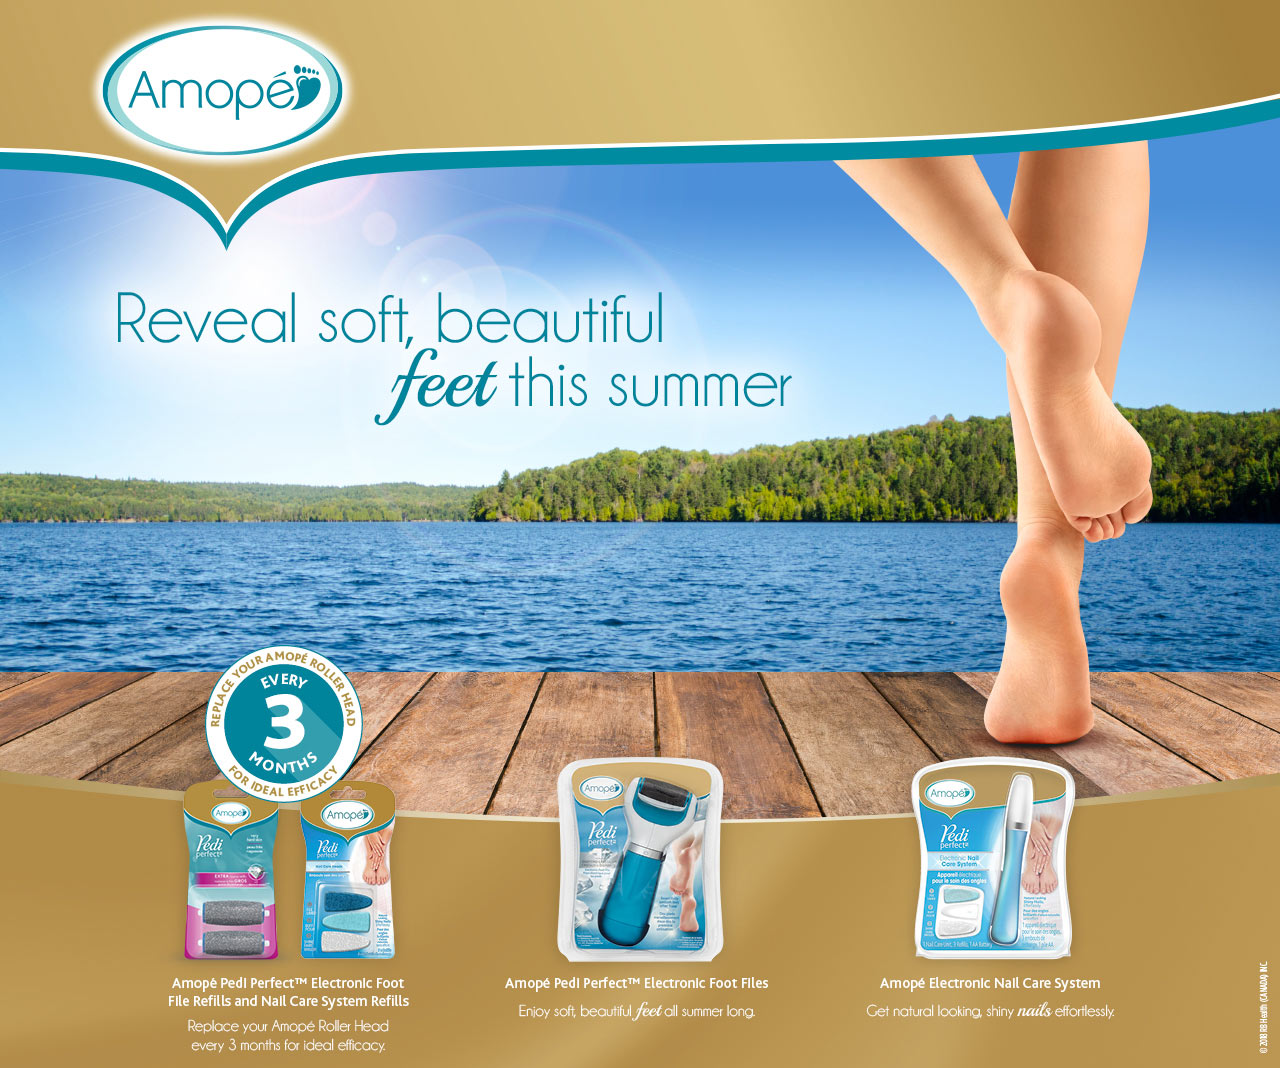 Amopé | Reveal soft, beautiful feet this summer